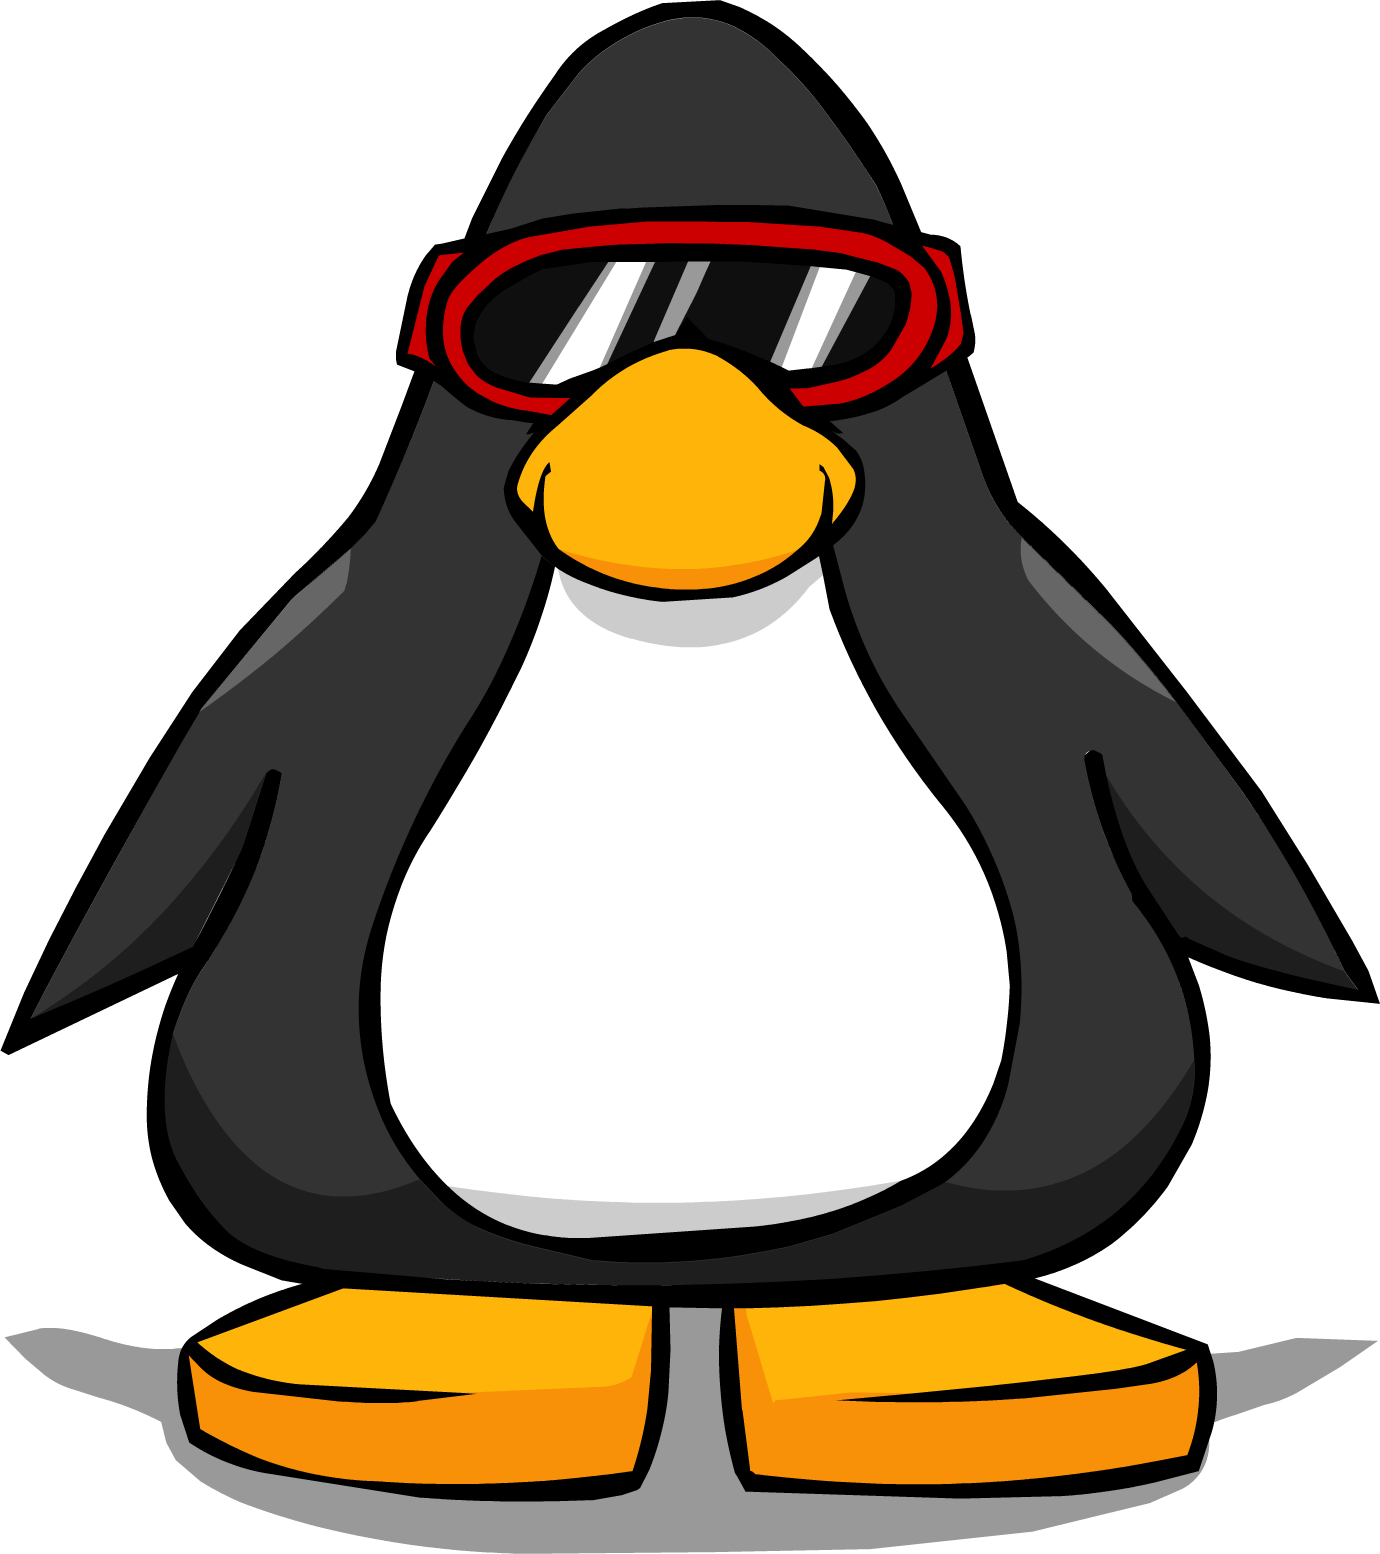 Image red ski goggles. Clipart penquin skiing